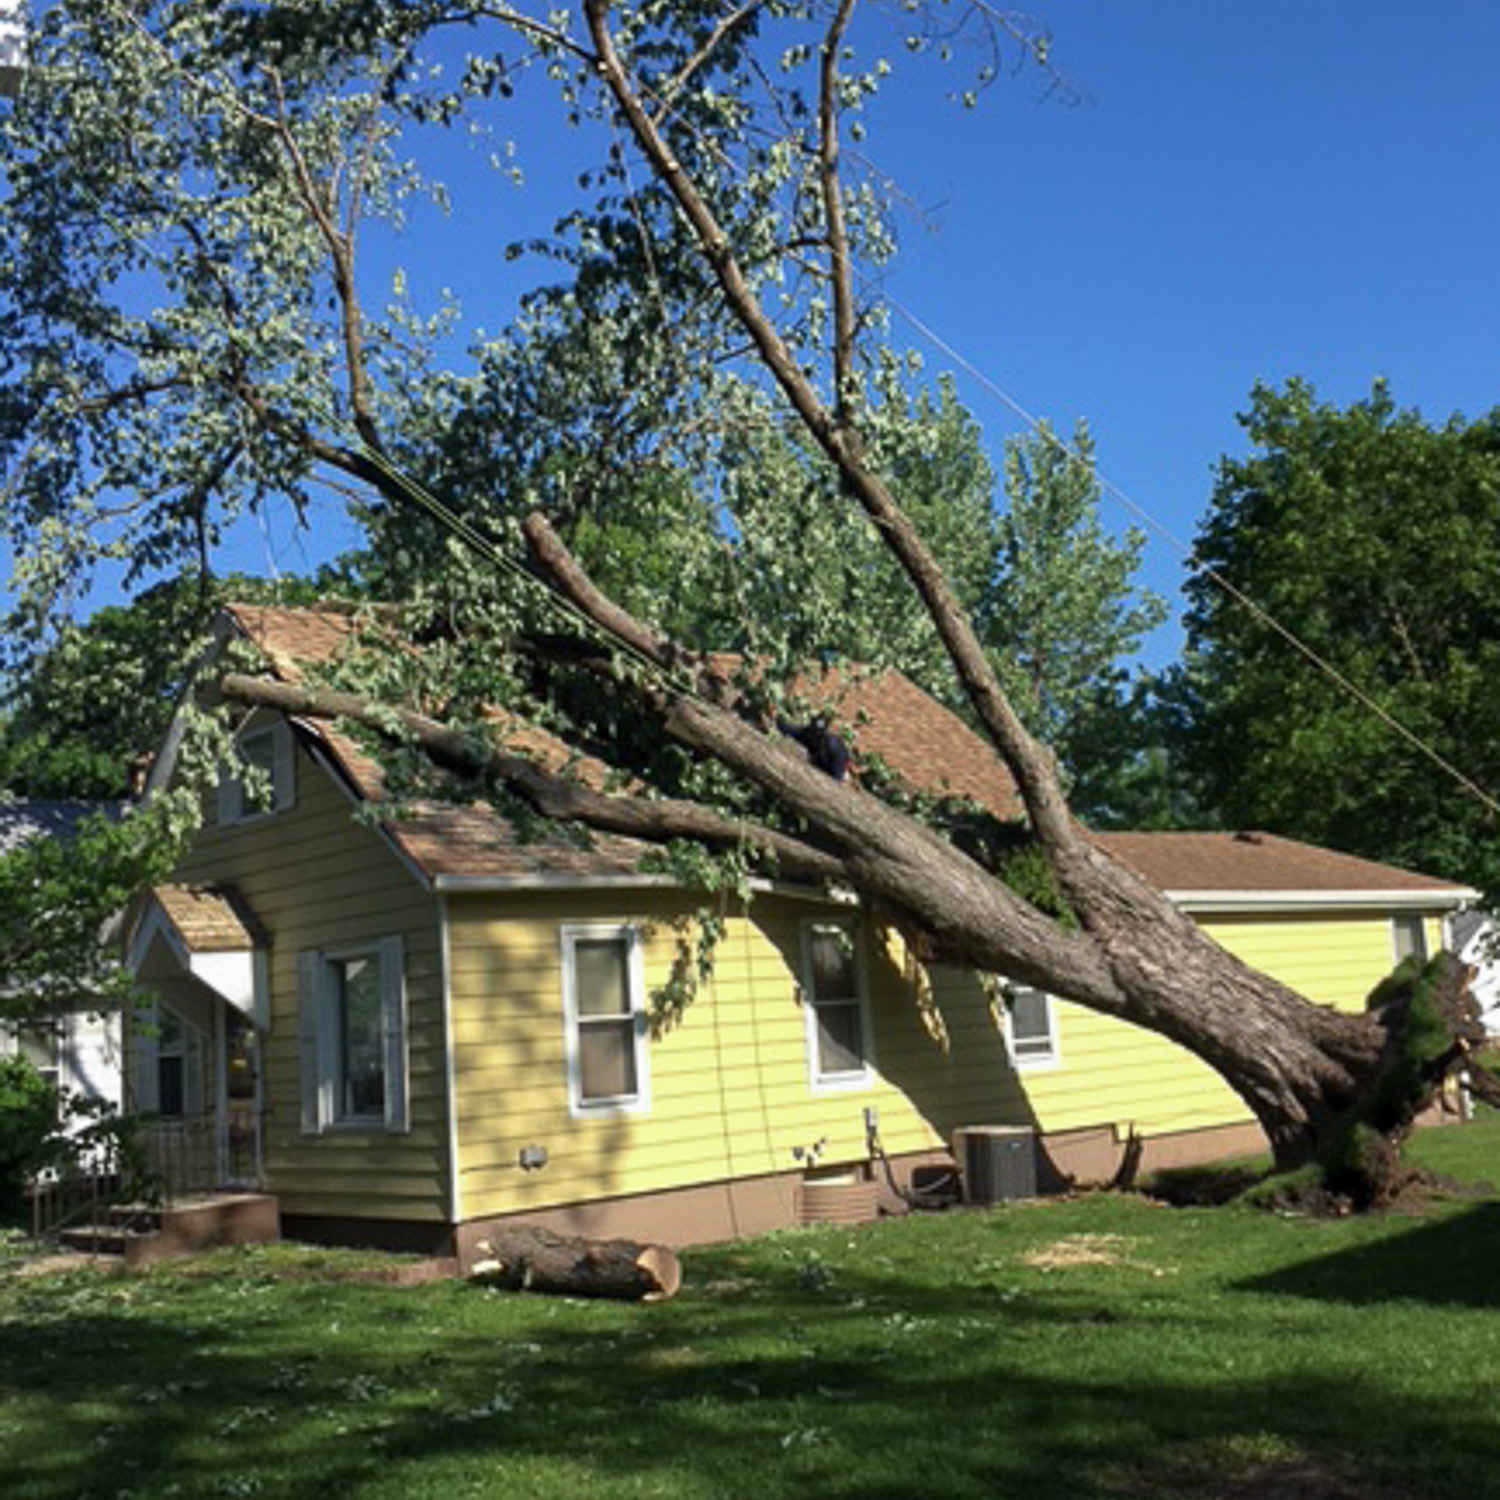 wind damage-large fallen tree on the roof of a house.